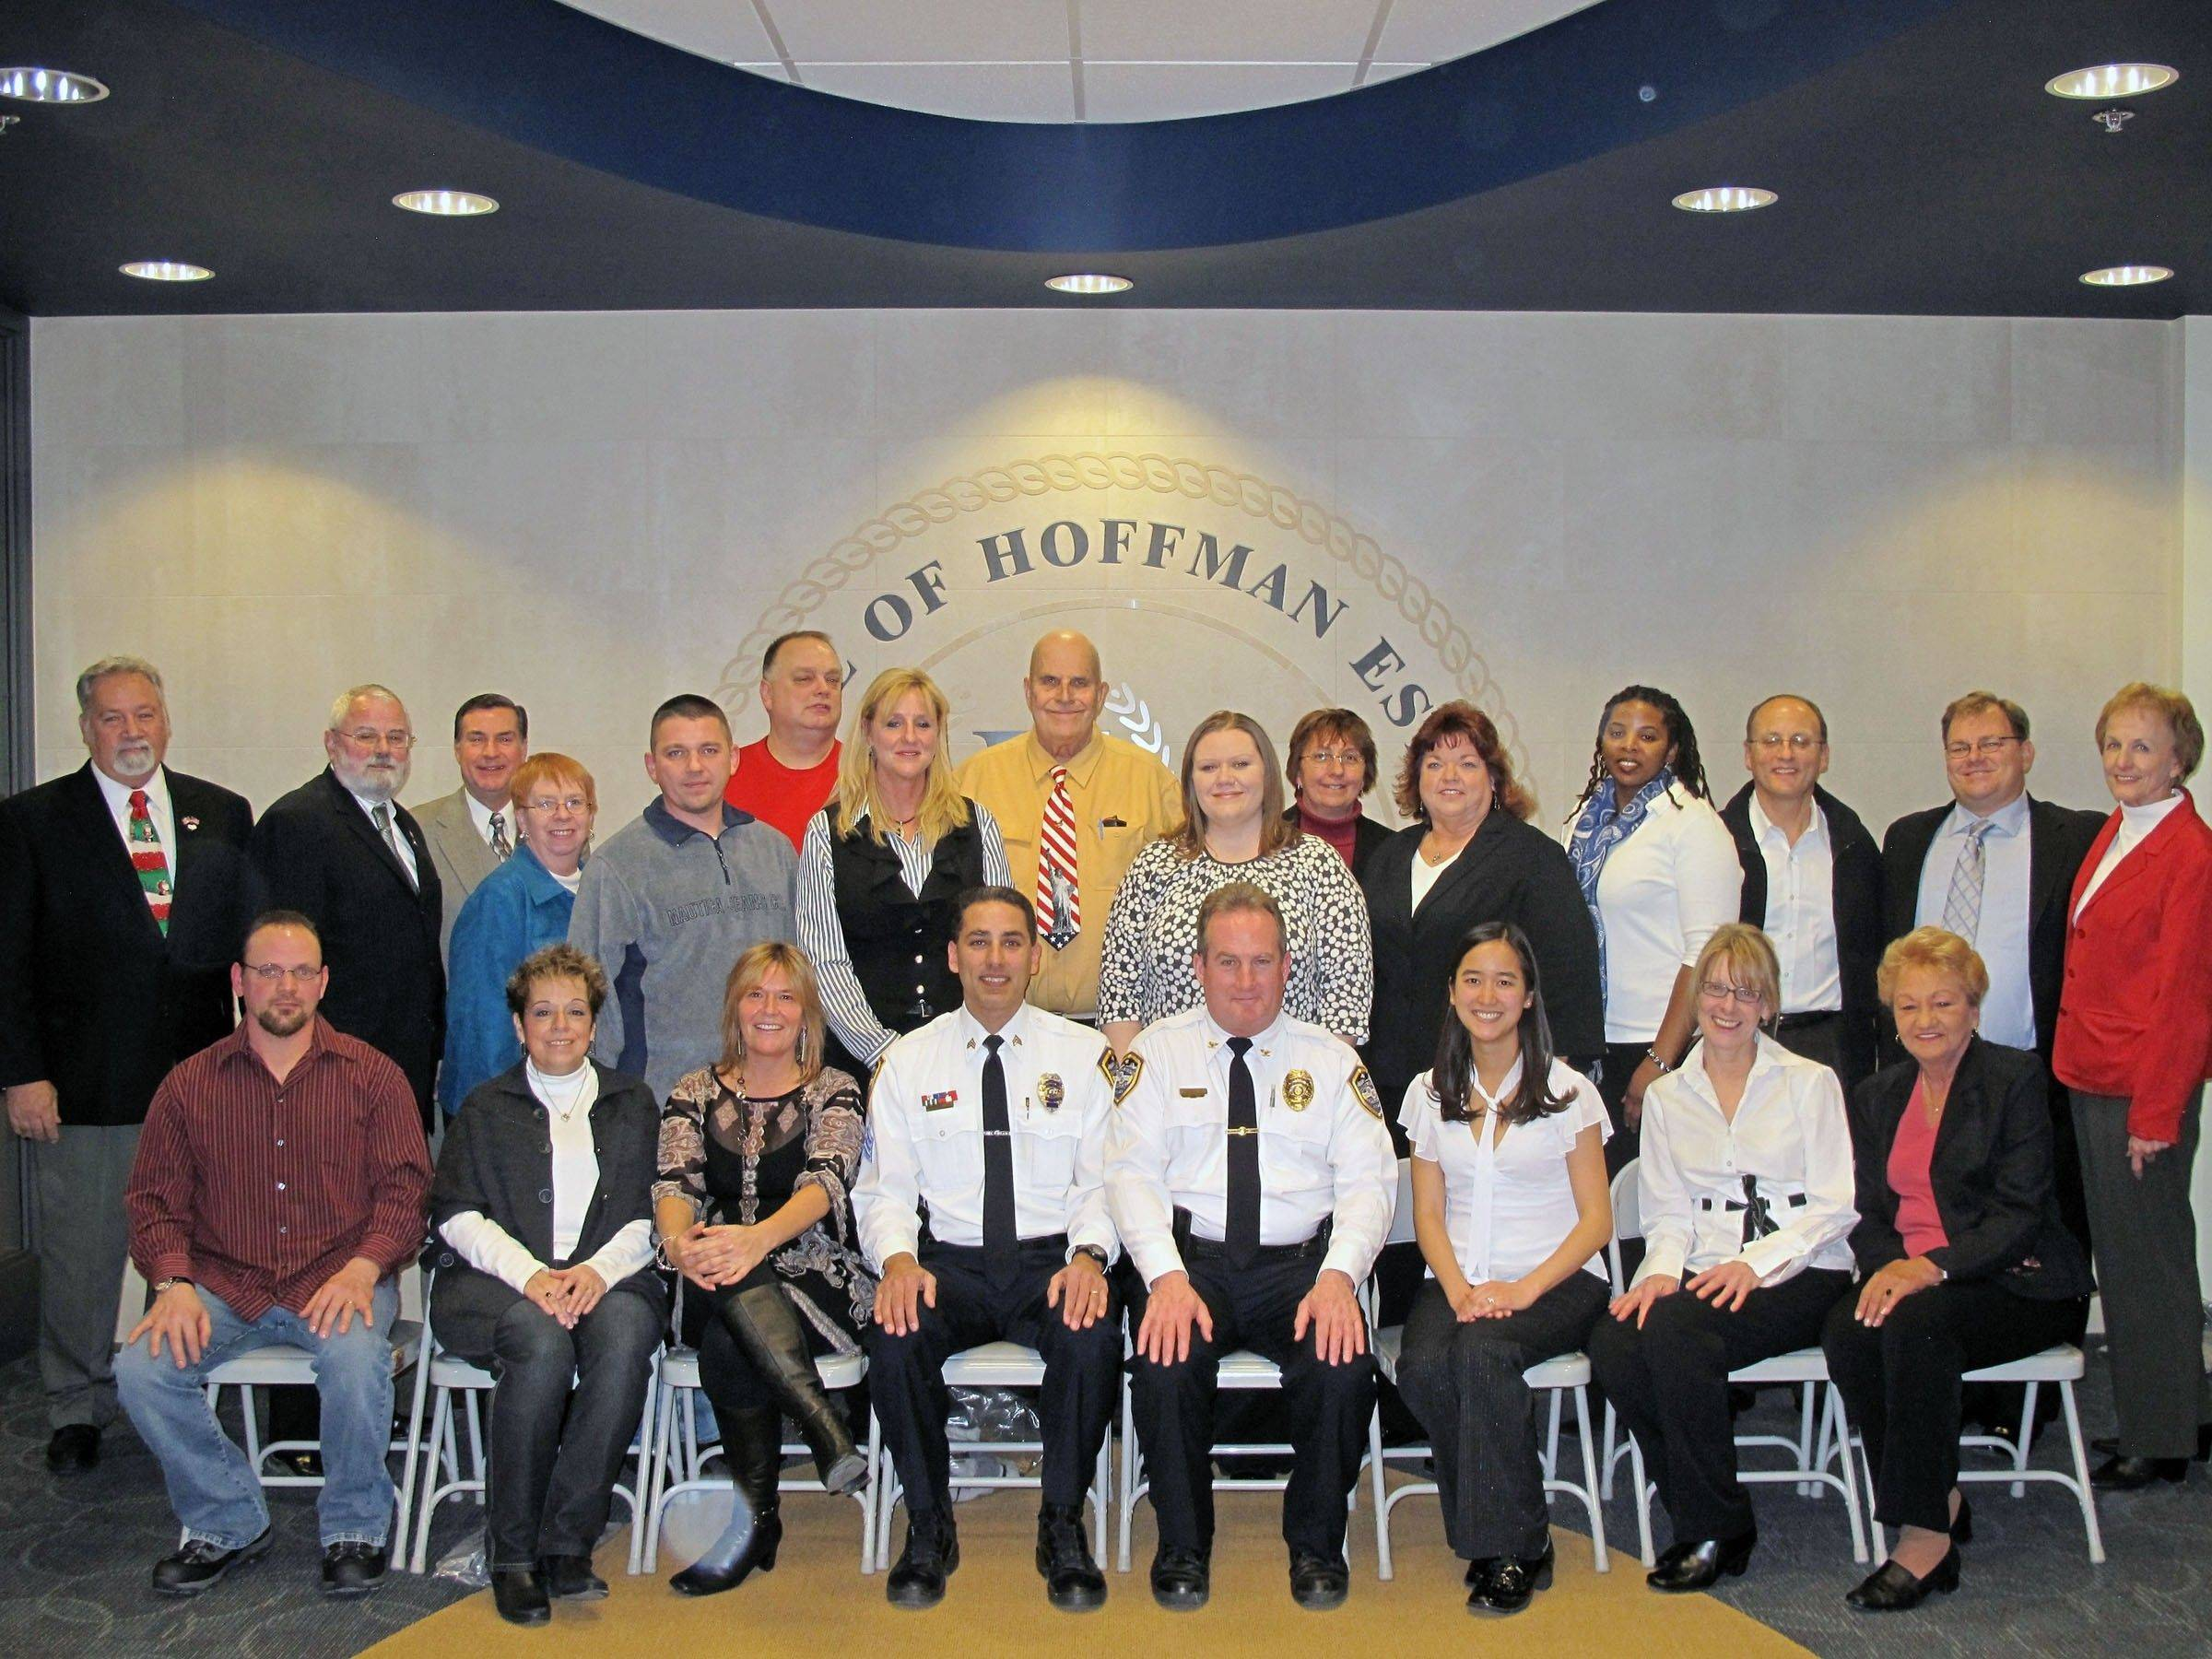 Graduates of last year�s Citizen Police Academy gather for a class photo with their instructors and members of the Hoffman Estates village board of trustees.